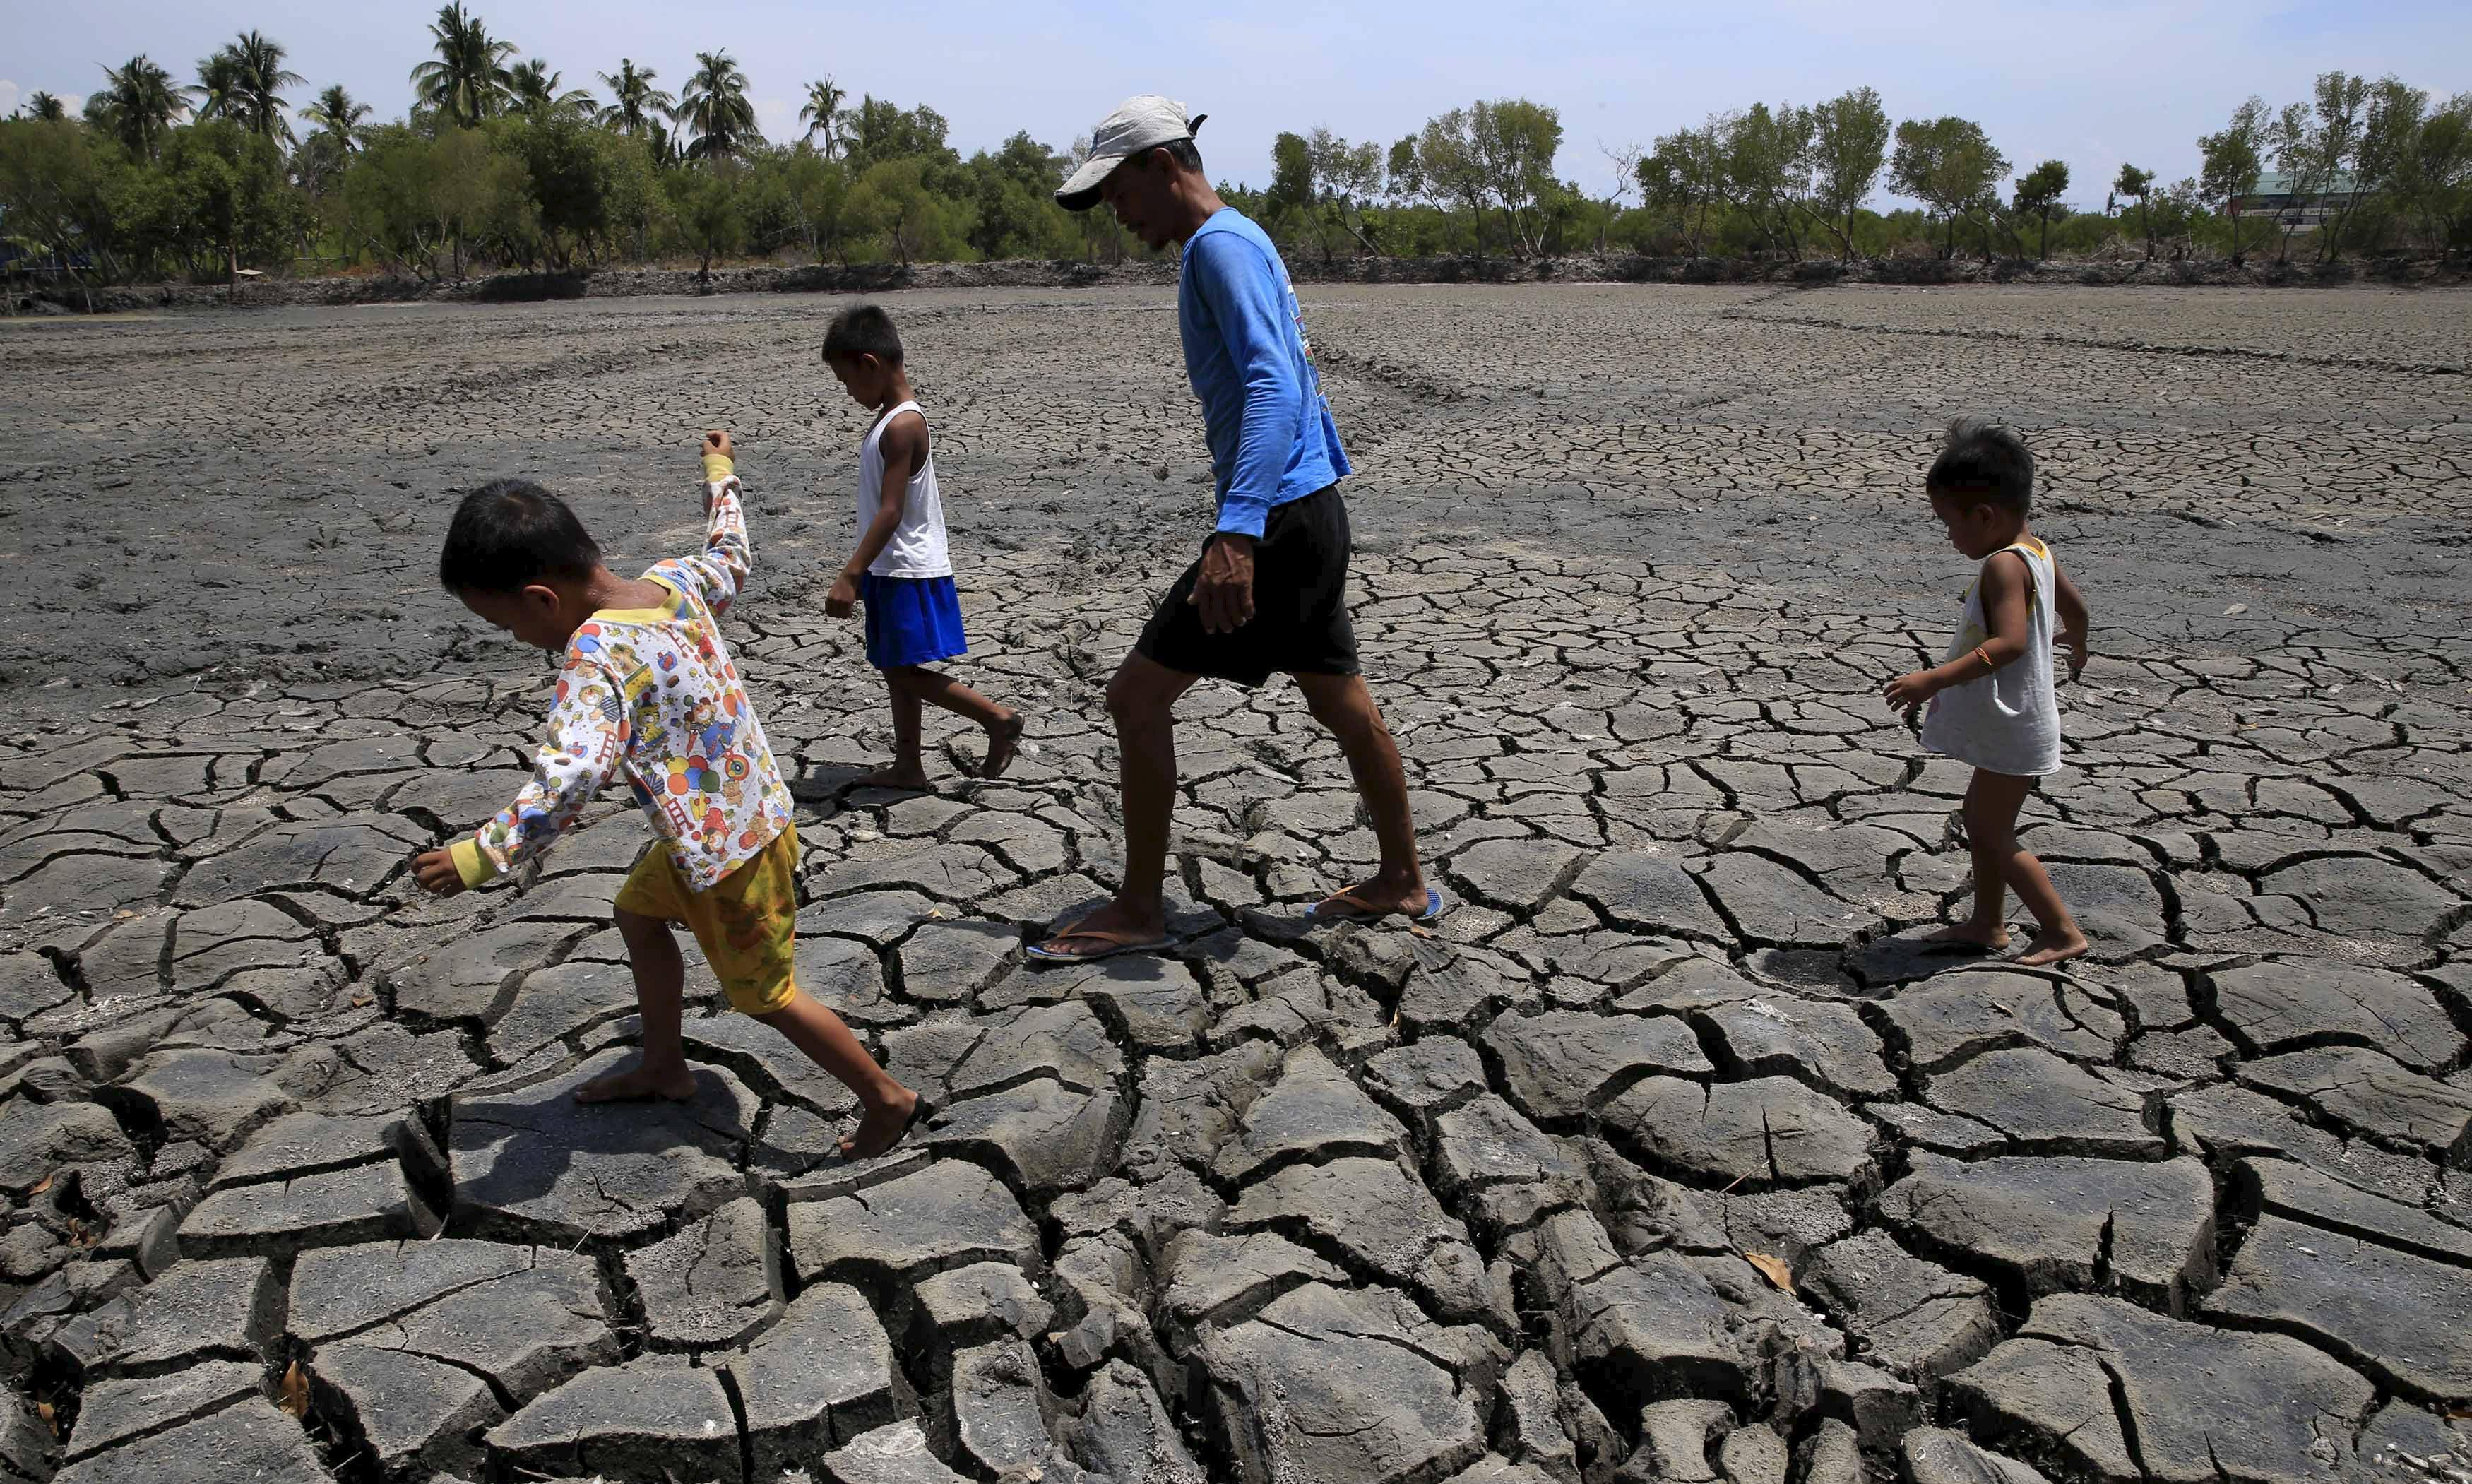 Don't care about climate change? What about the health of children?